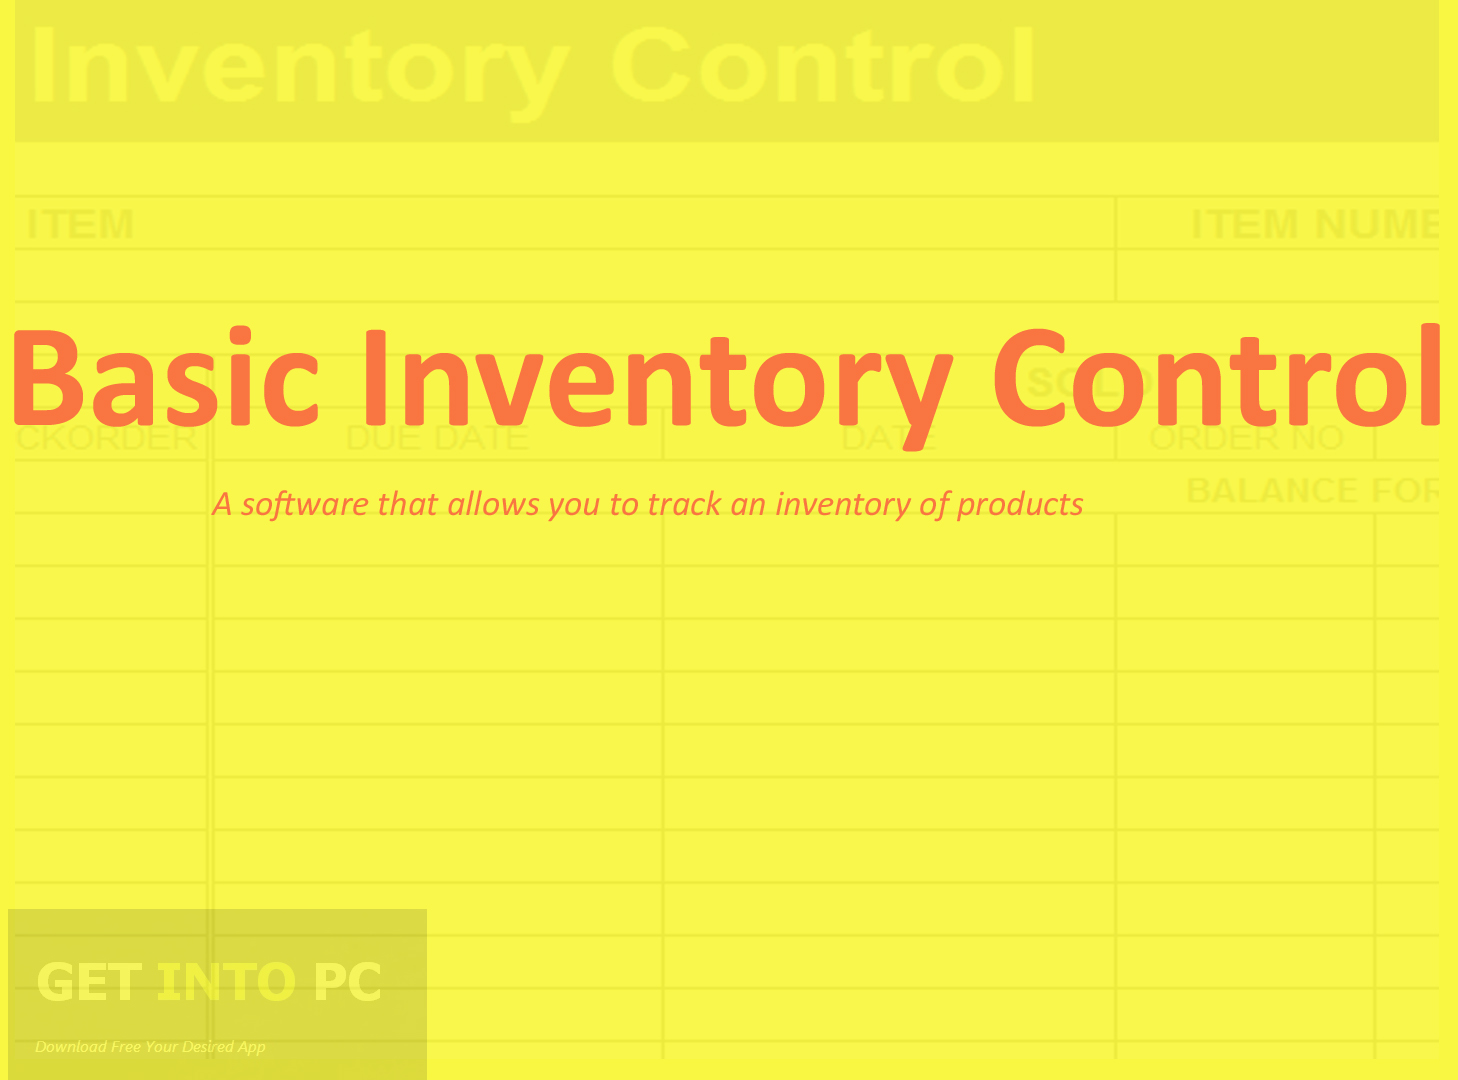 Basic Inventory Control Free Download